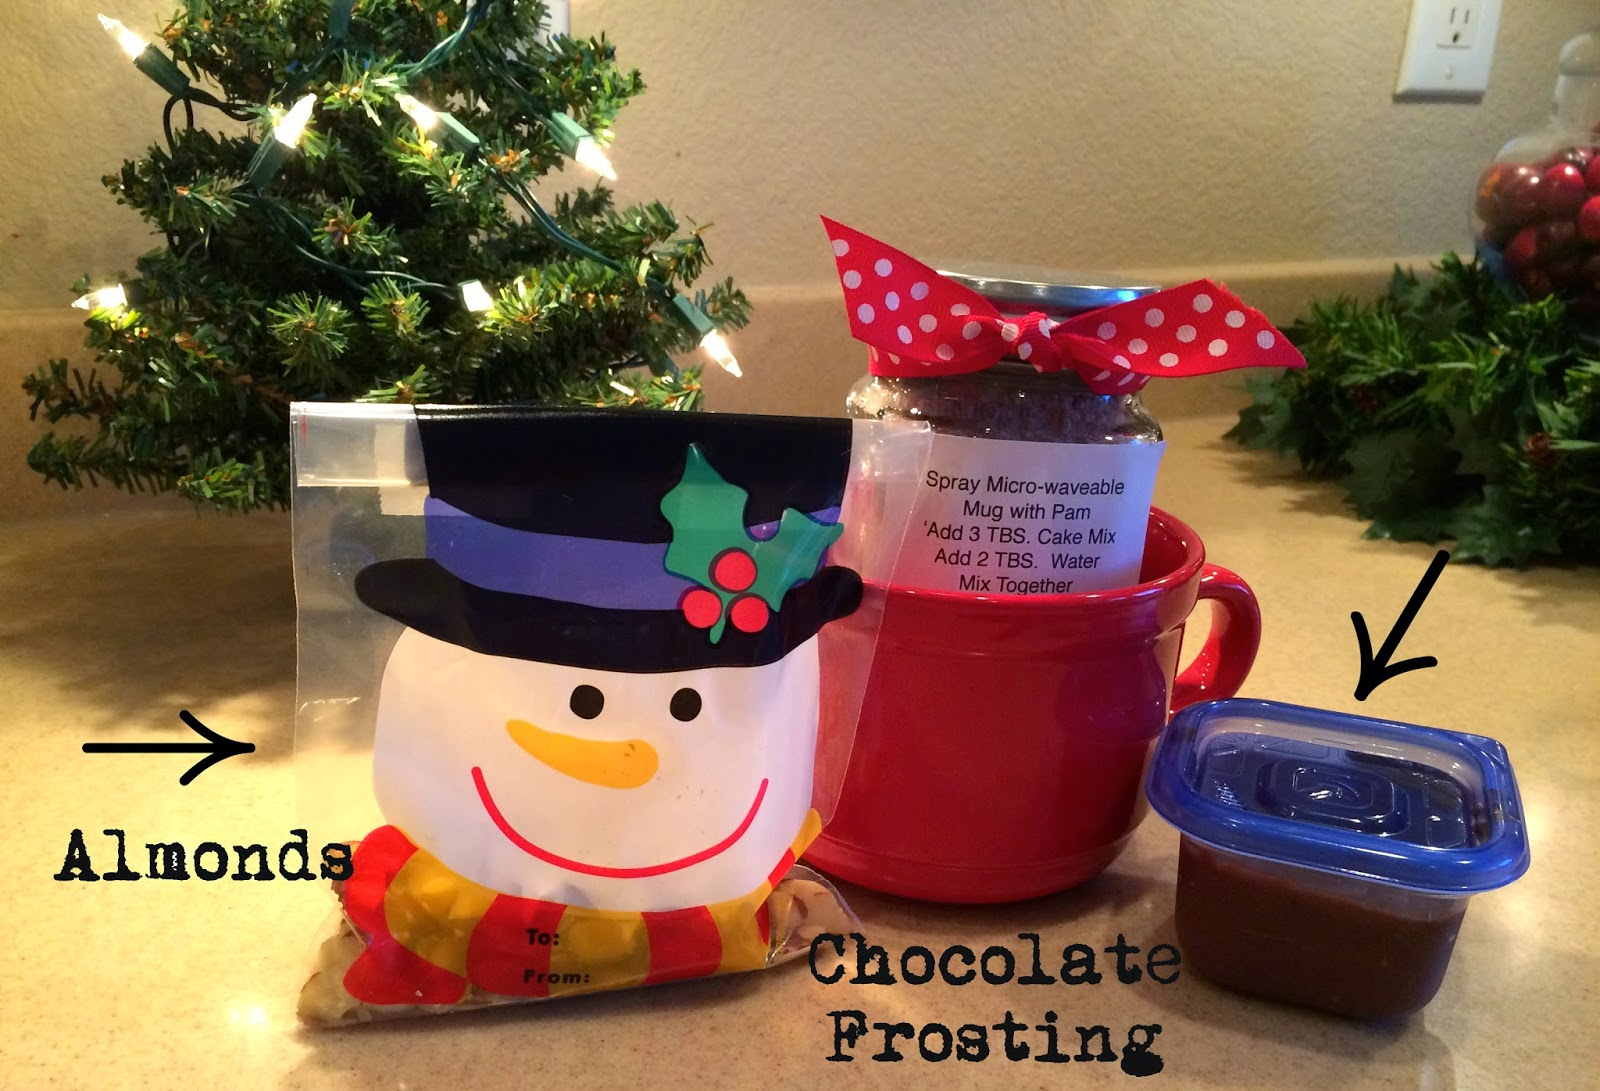 Christmas Ideas For Friends.Marci Coombs Last Minute Christmas Ideas For Friends And